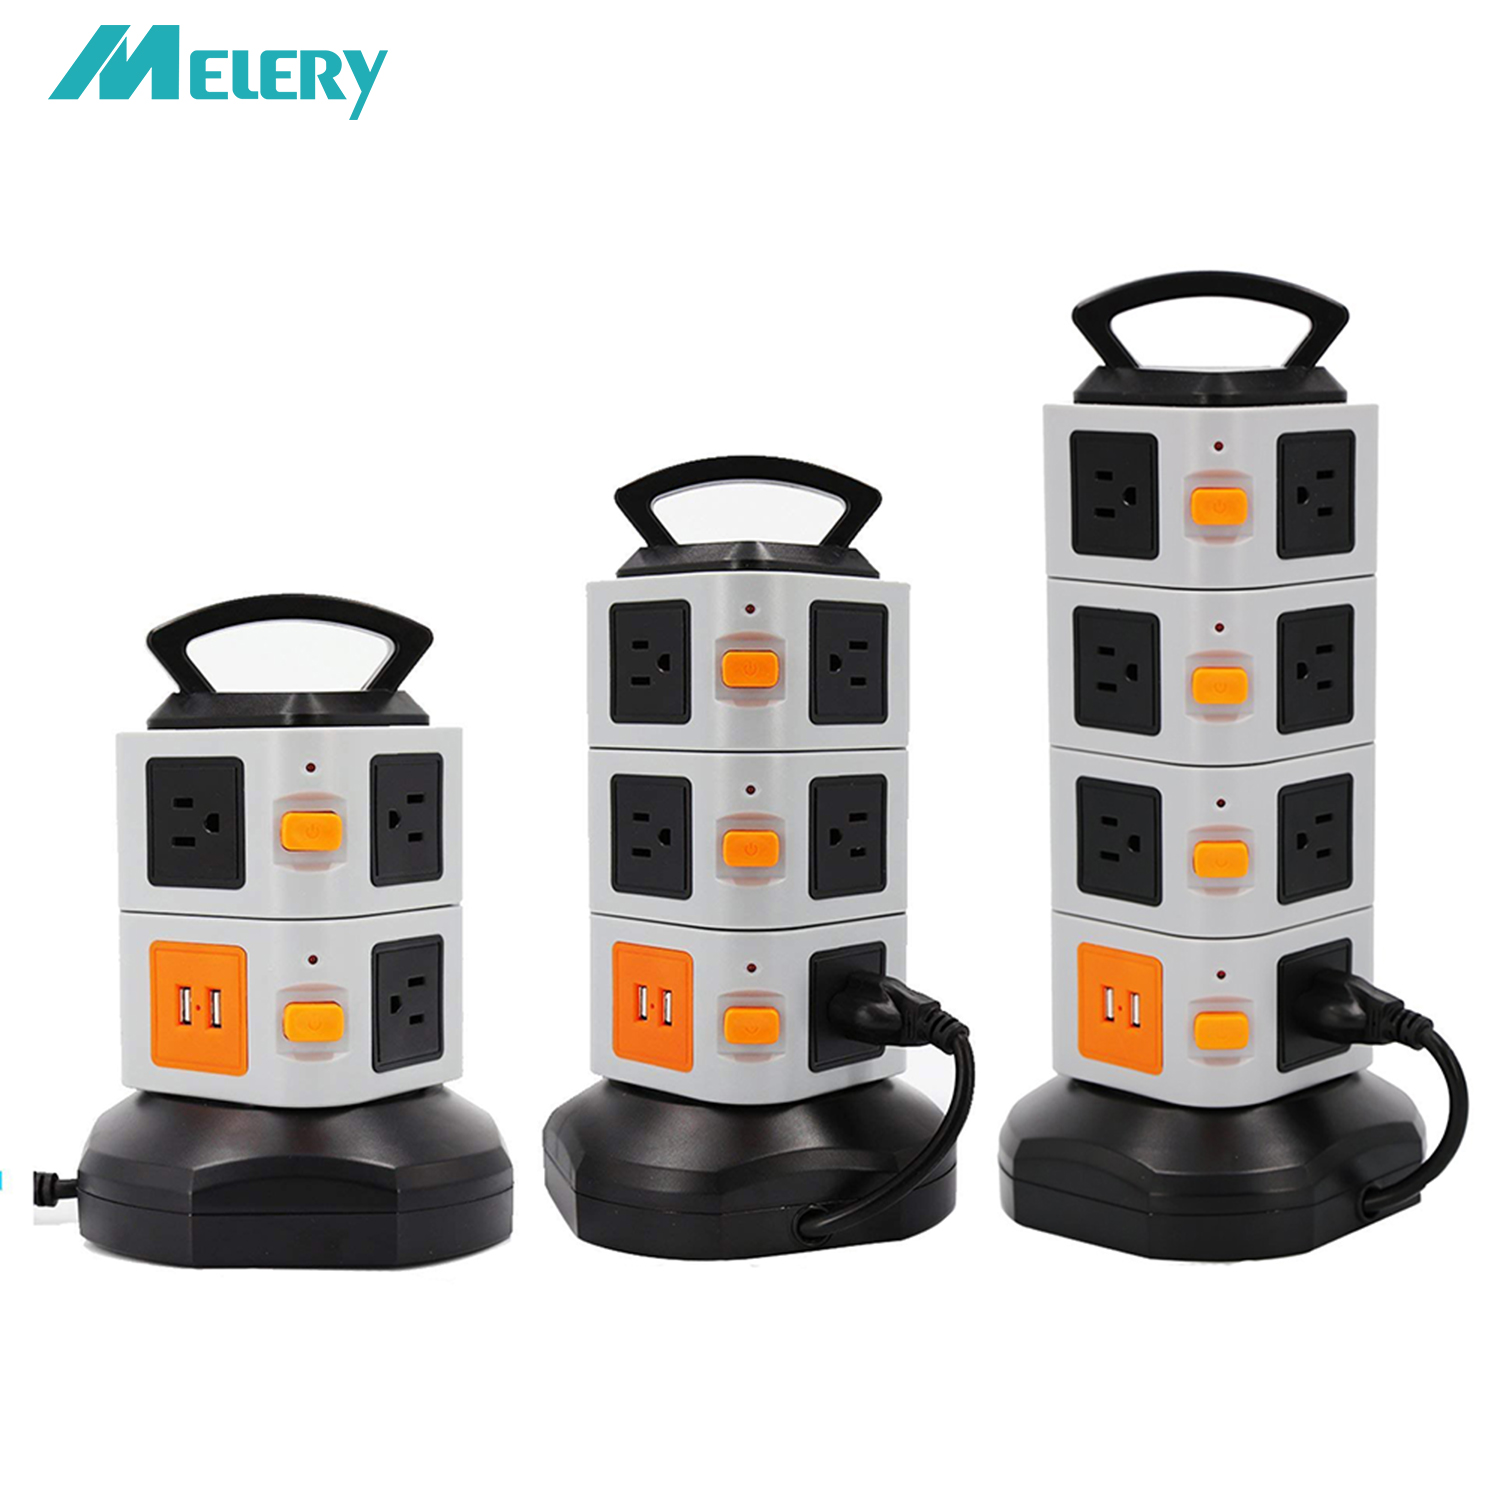 Vertical USB Socket Power Strip Extenter for Outlets Surge Protector 2500W 10A 7 11 15 Socket